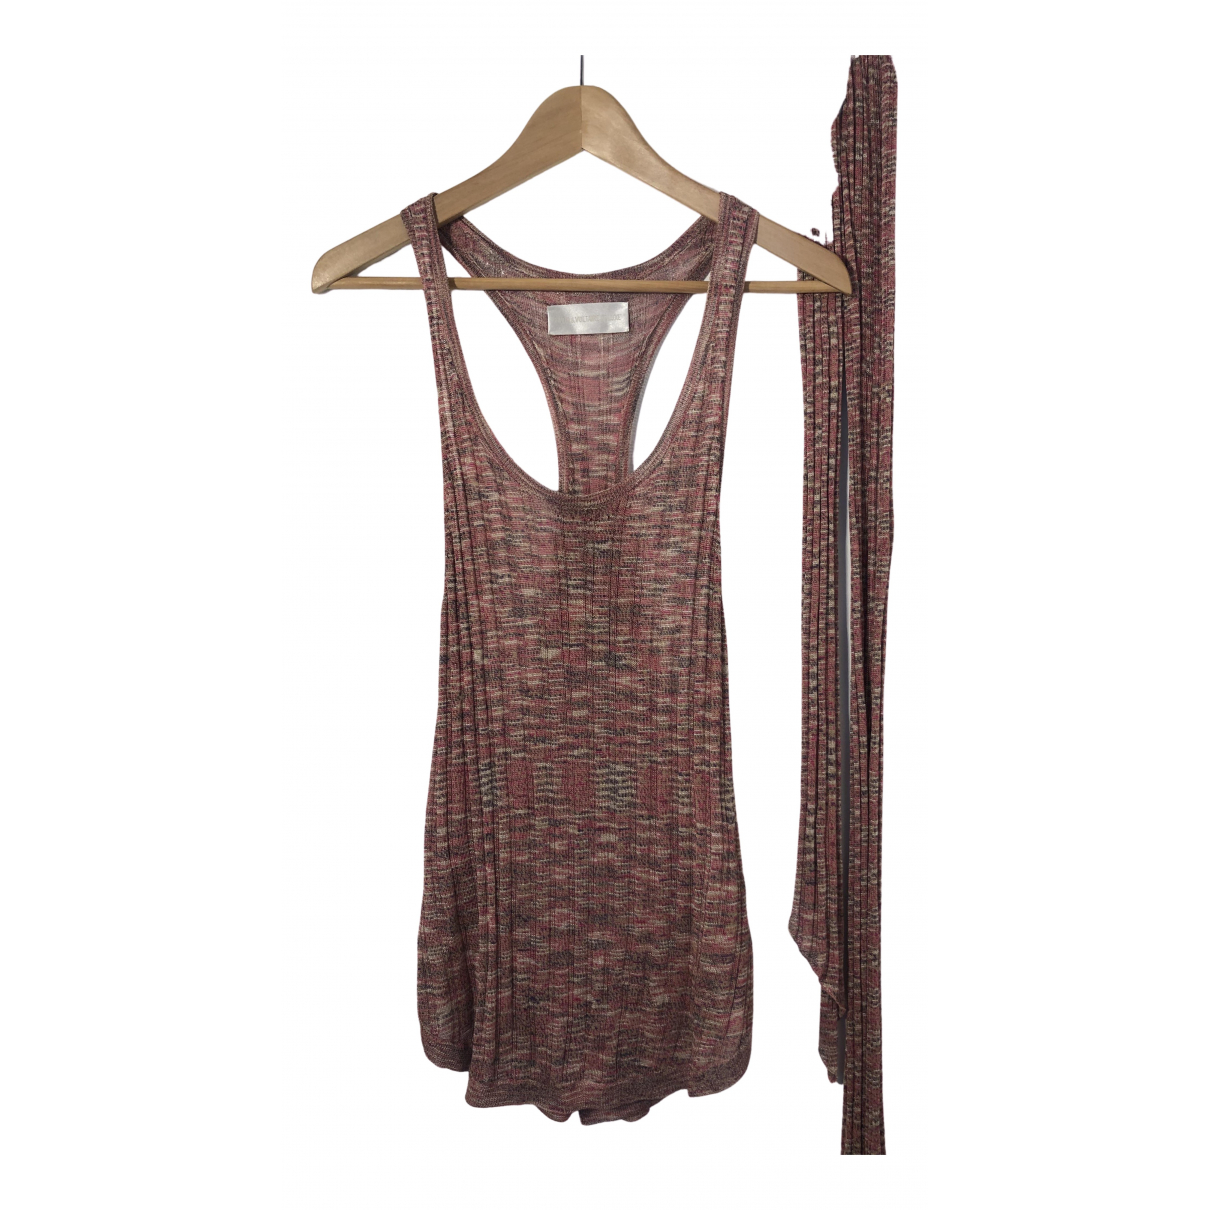 Zadig & Voltaire N Multicolour  top for Women M International